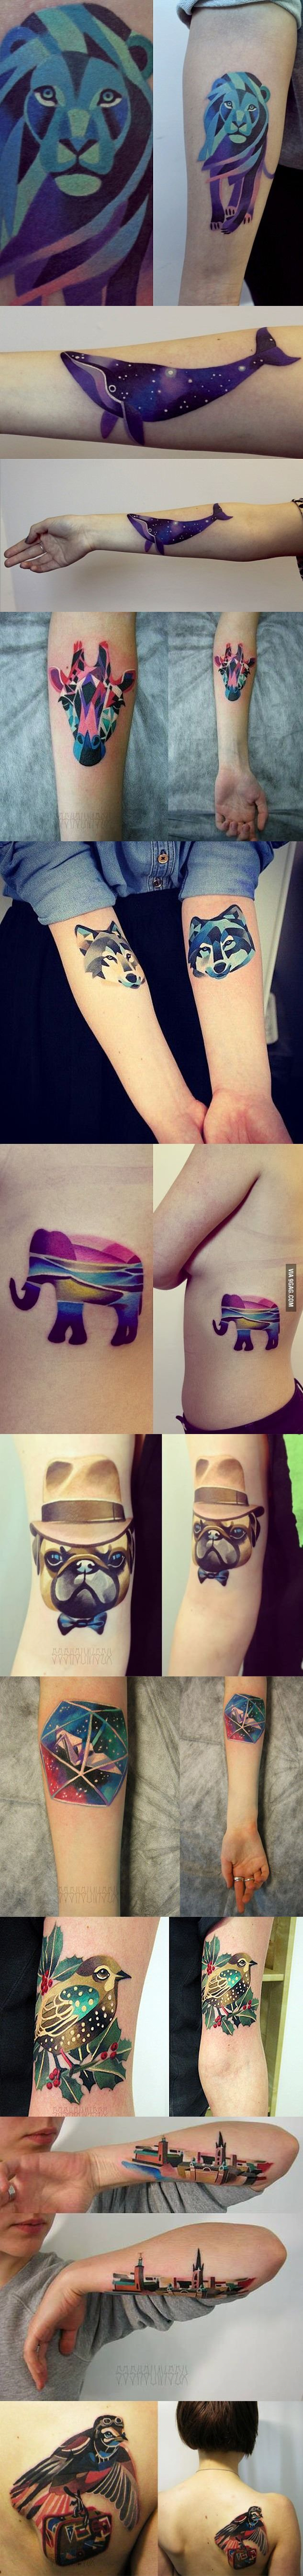 Pretty f'kin cool tattoos - If I were to get a tattoo, the lion would be my pick for my Leo Astrology.